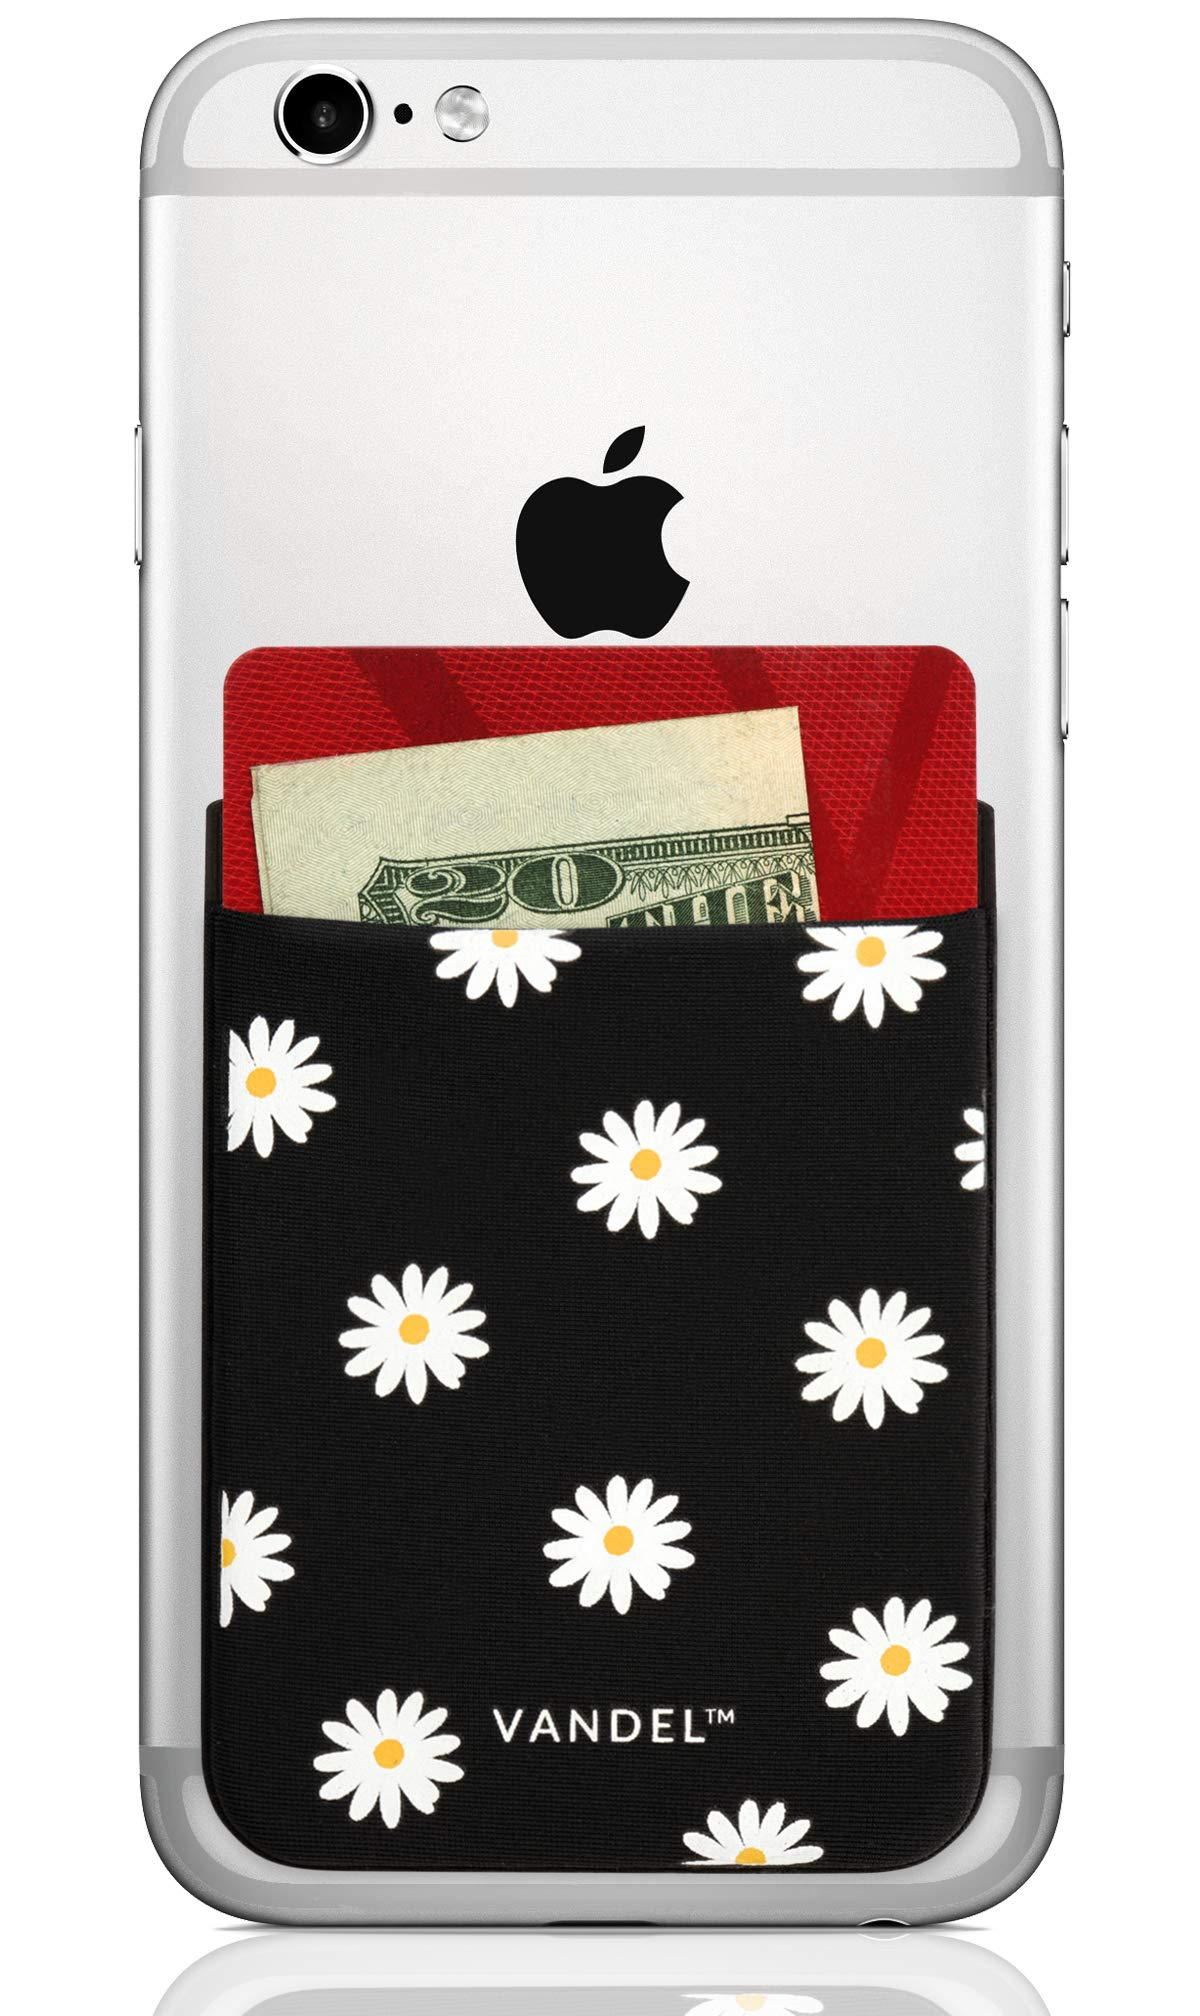 Vandel Pocket: Stick On Fabric Cell Phone Wallet | Credit Card Holder for Back of Smartphone Case | Stretchy Fabric Adhesive Sleeve Compatible with All Devices | Daisy by Vandel Brand